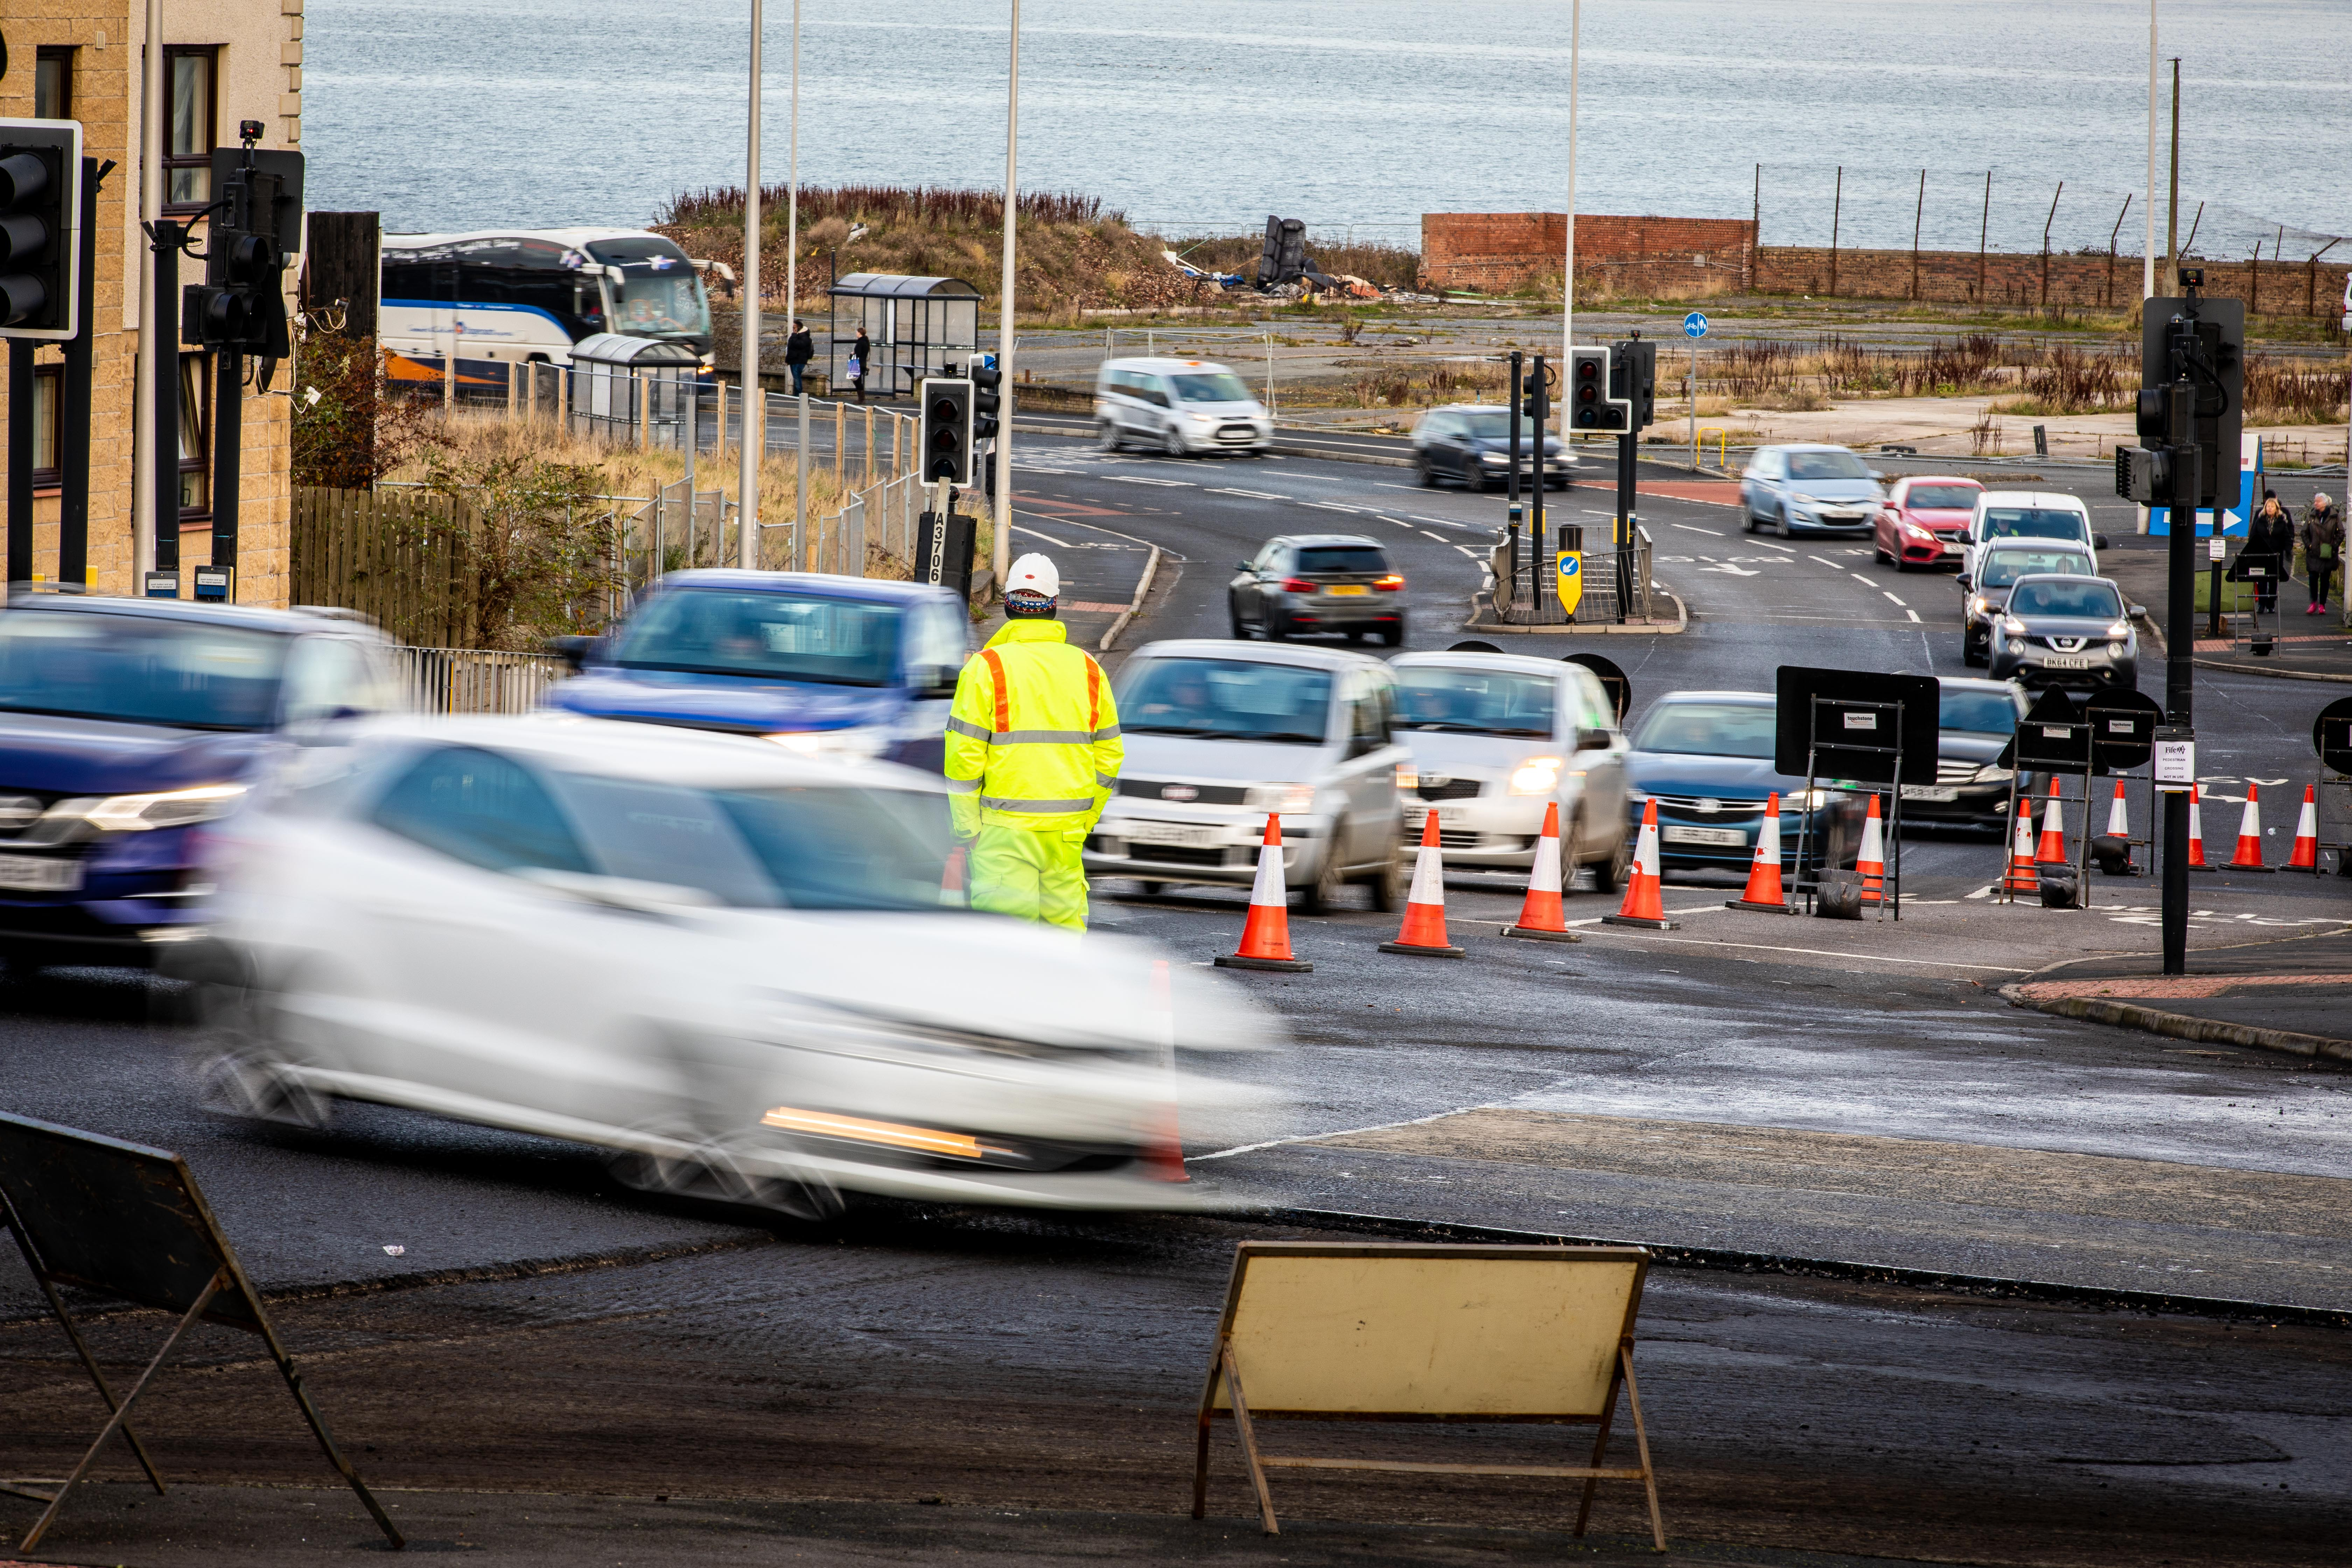 Traffic queuing at the roadworks in Kirkcaldy.